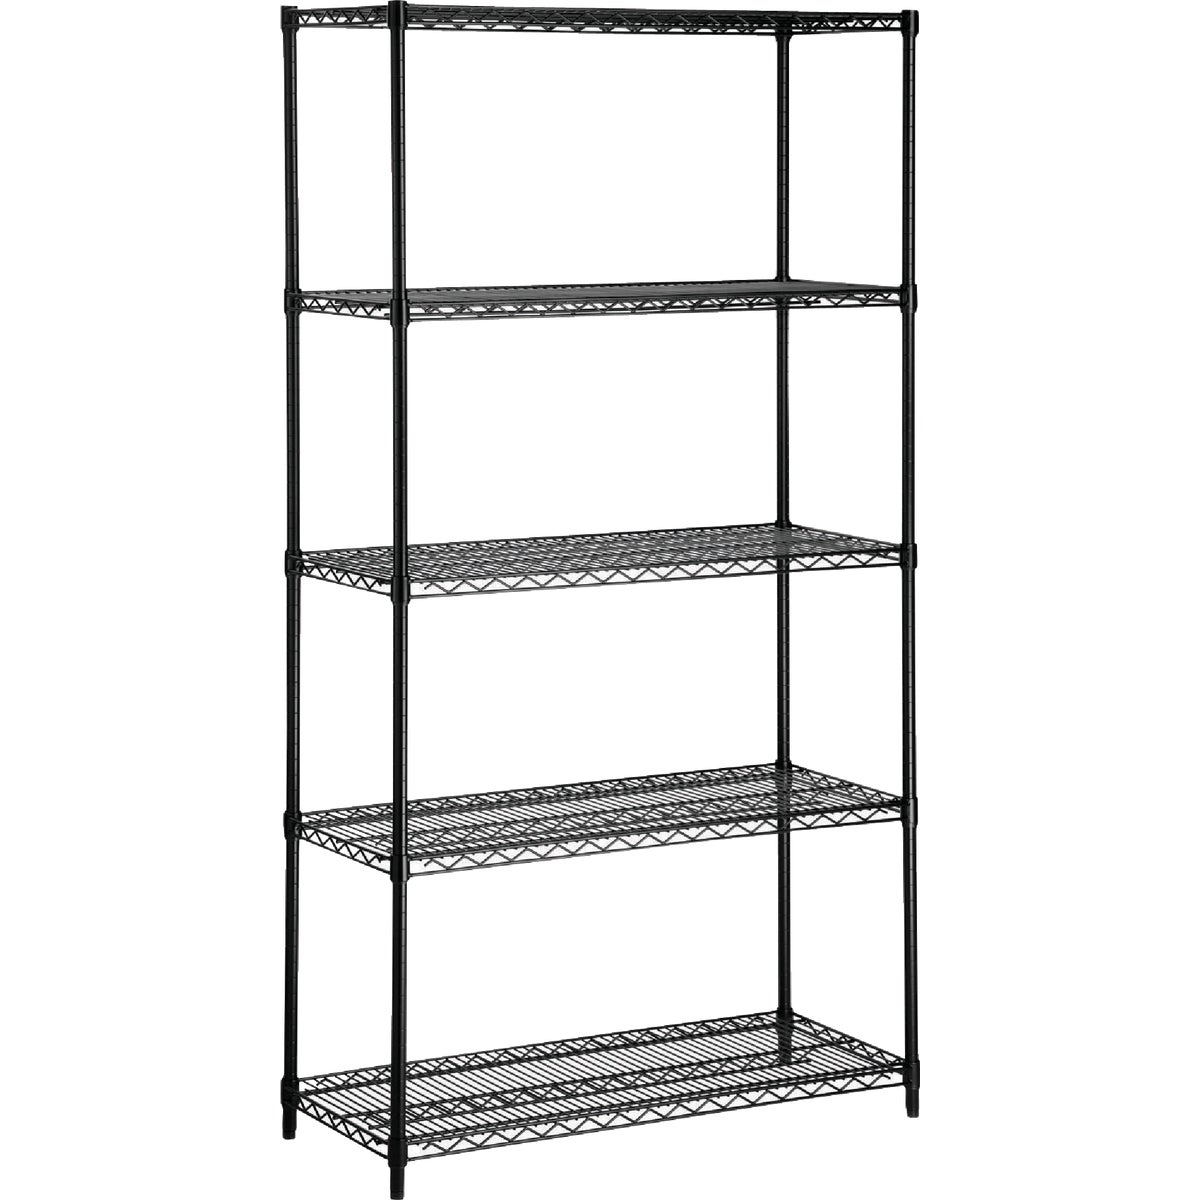 BLK 5 TIER SHELF